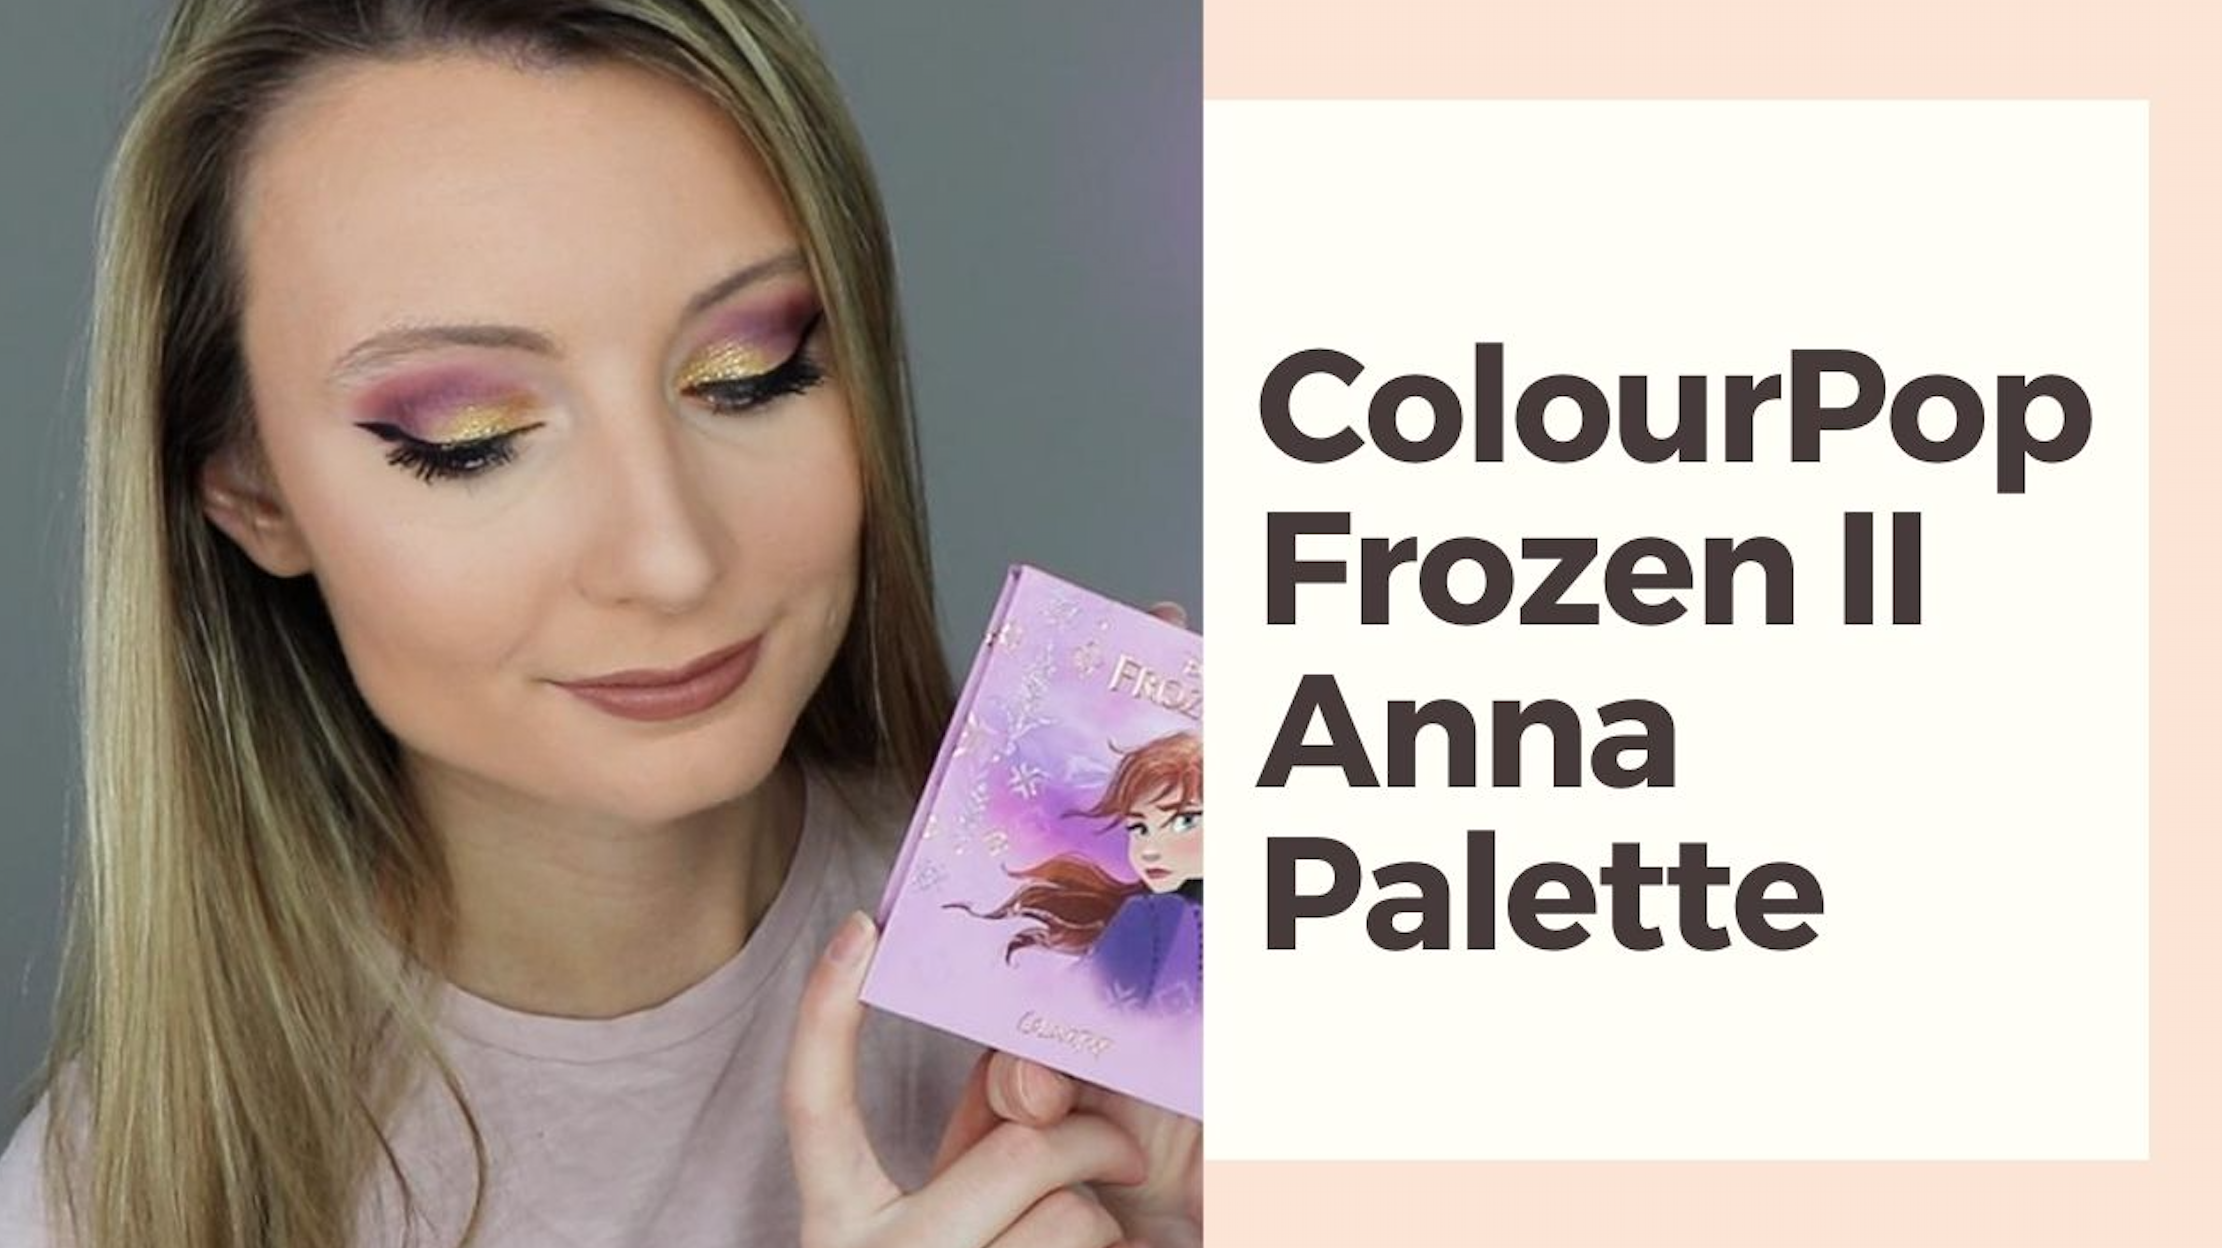 Colourpop Frozen II Anna Palette Review & Tutorial